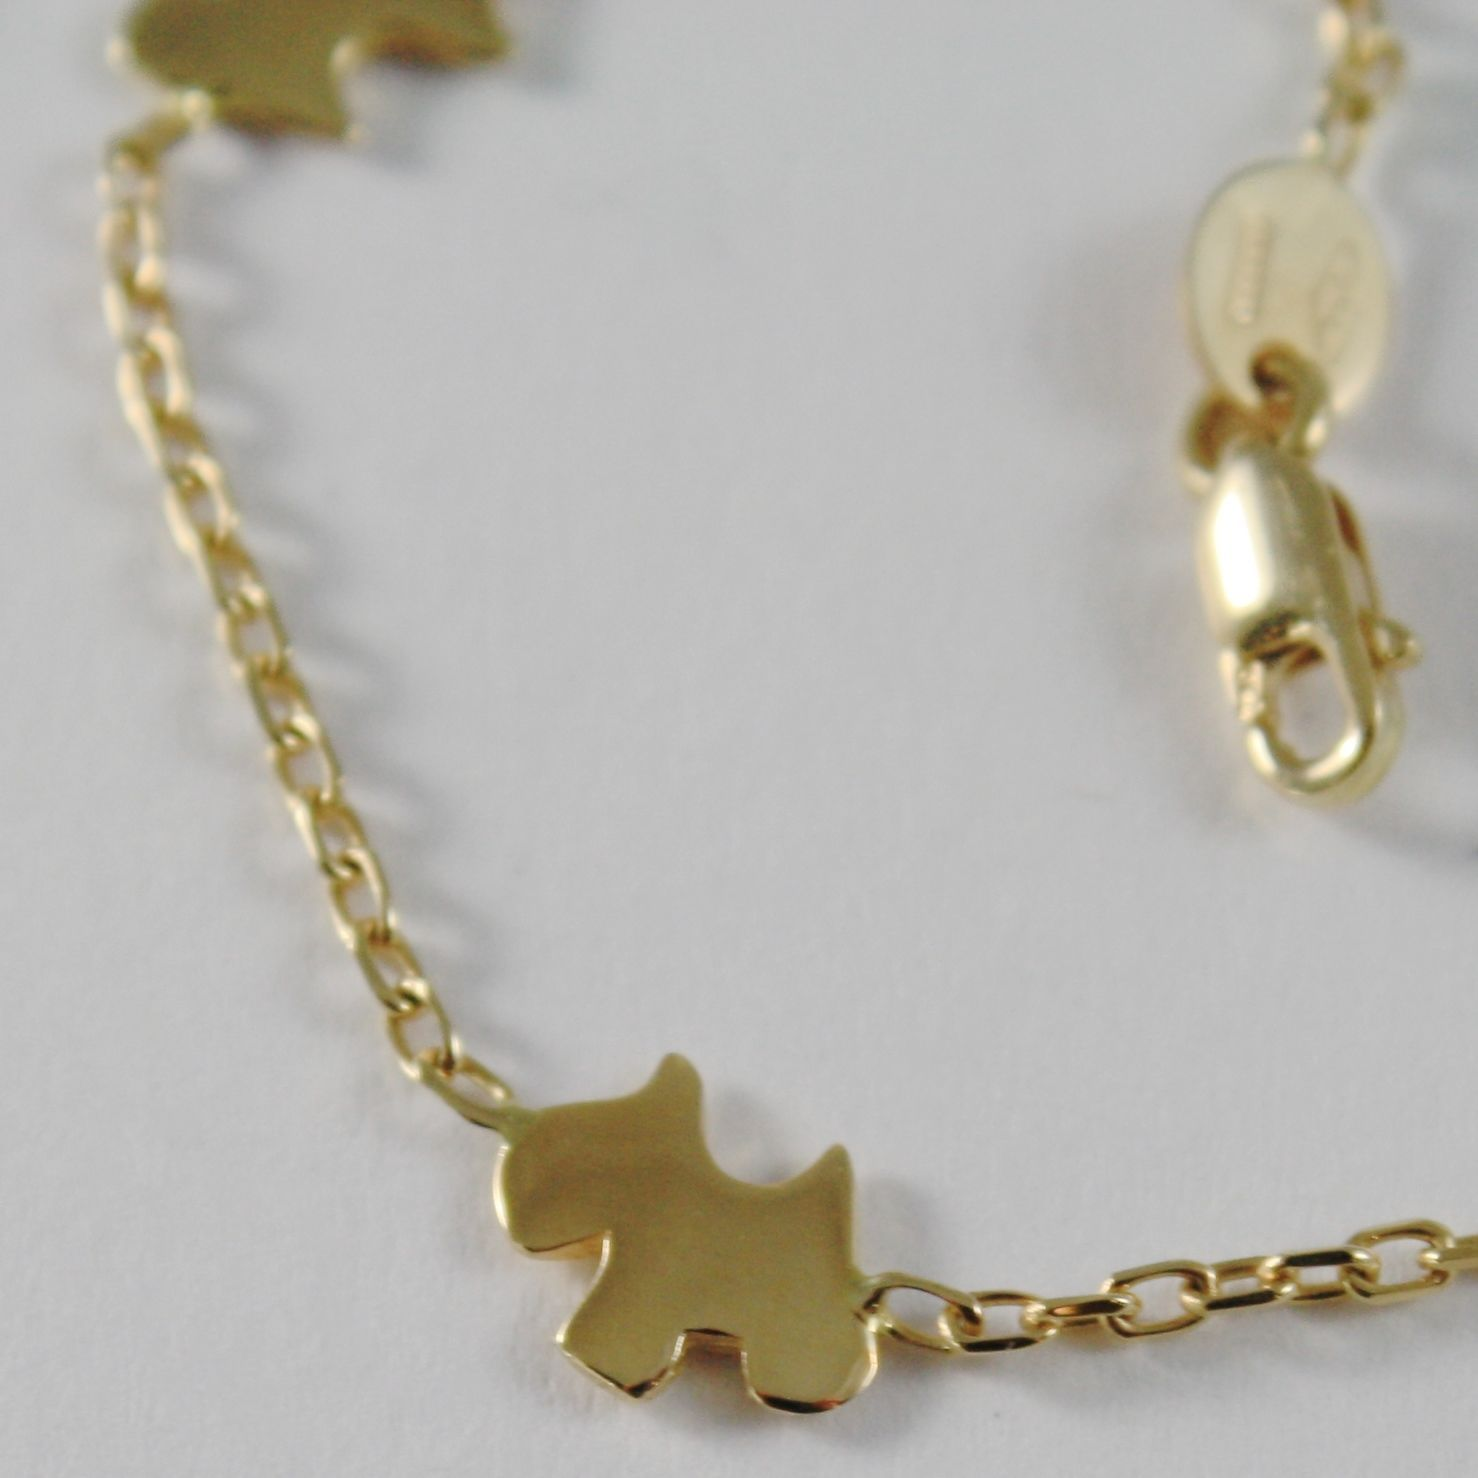 18k YELLOW GOLD BRACELET SMOOTH BRIGHT WITH DOG, PUPPY, TERRIER MADE IN ITALY